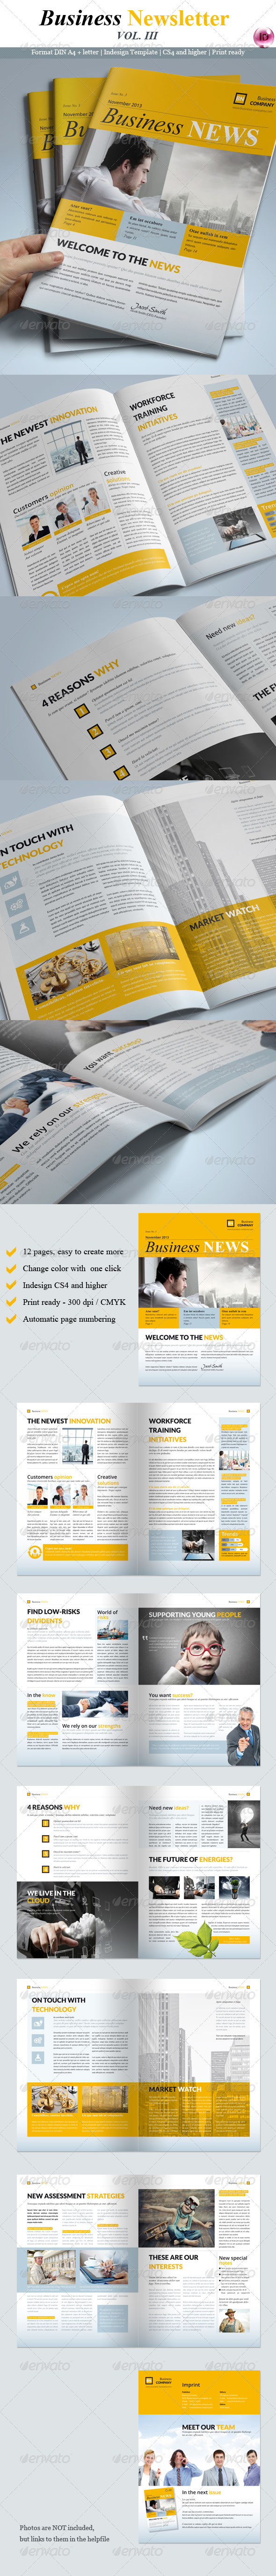 GraphicRiver Business Newsletter Vol III 5893352